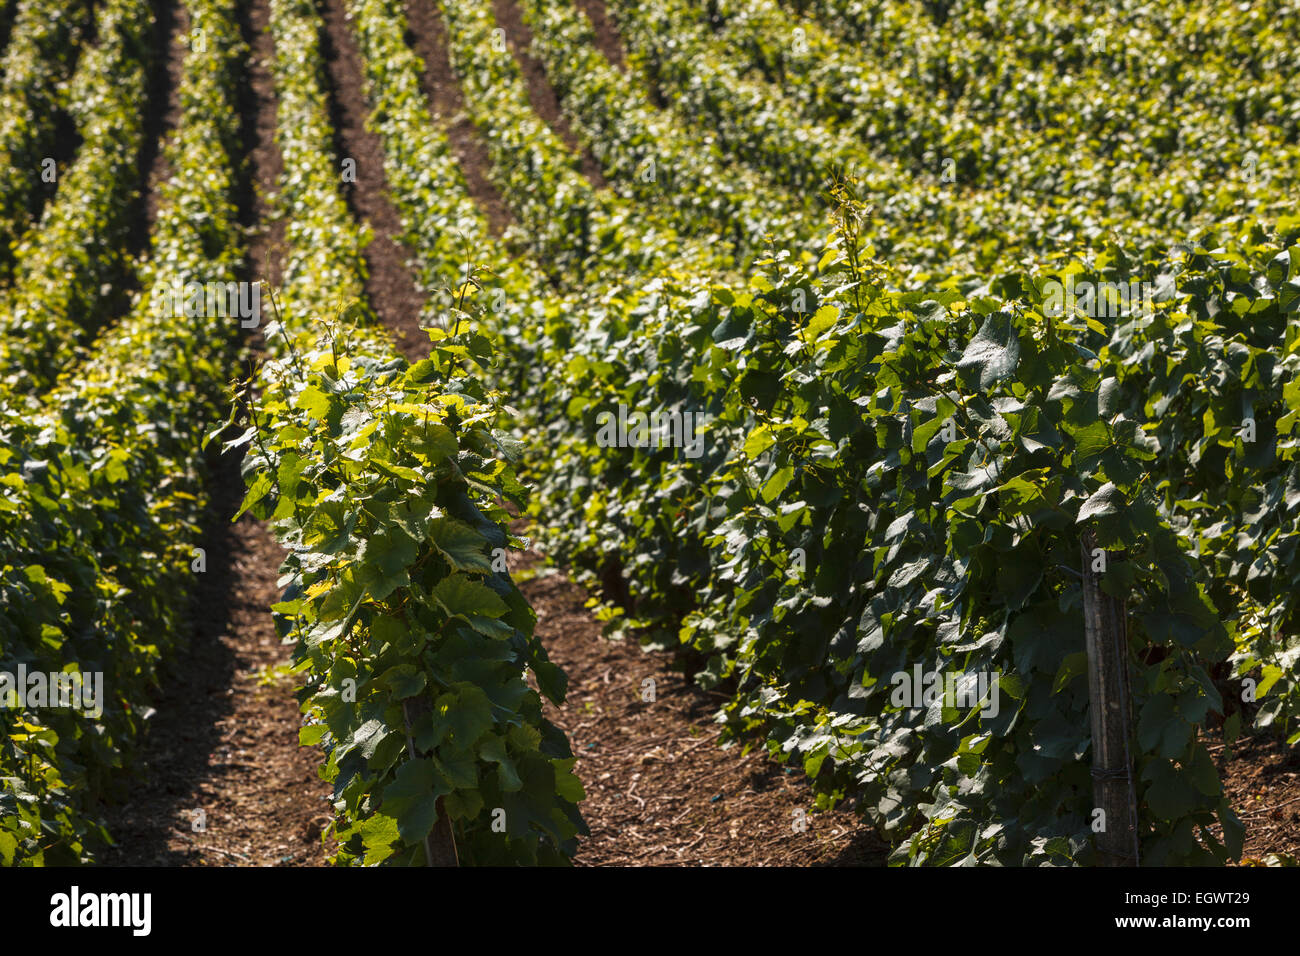 Champagne vines close-up in Champagne region, France, Europe - Stock Image